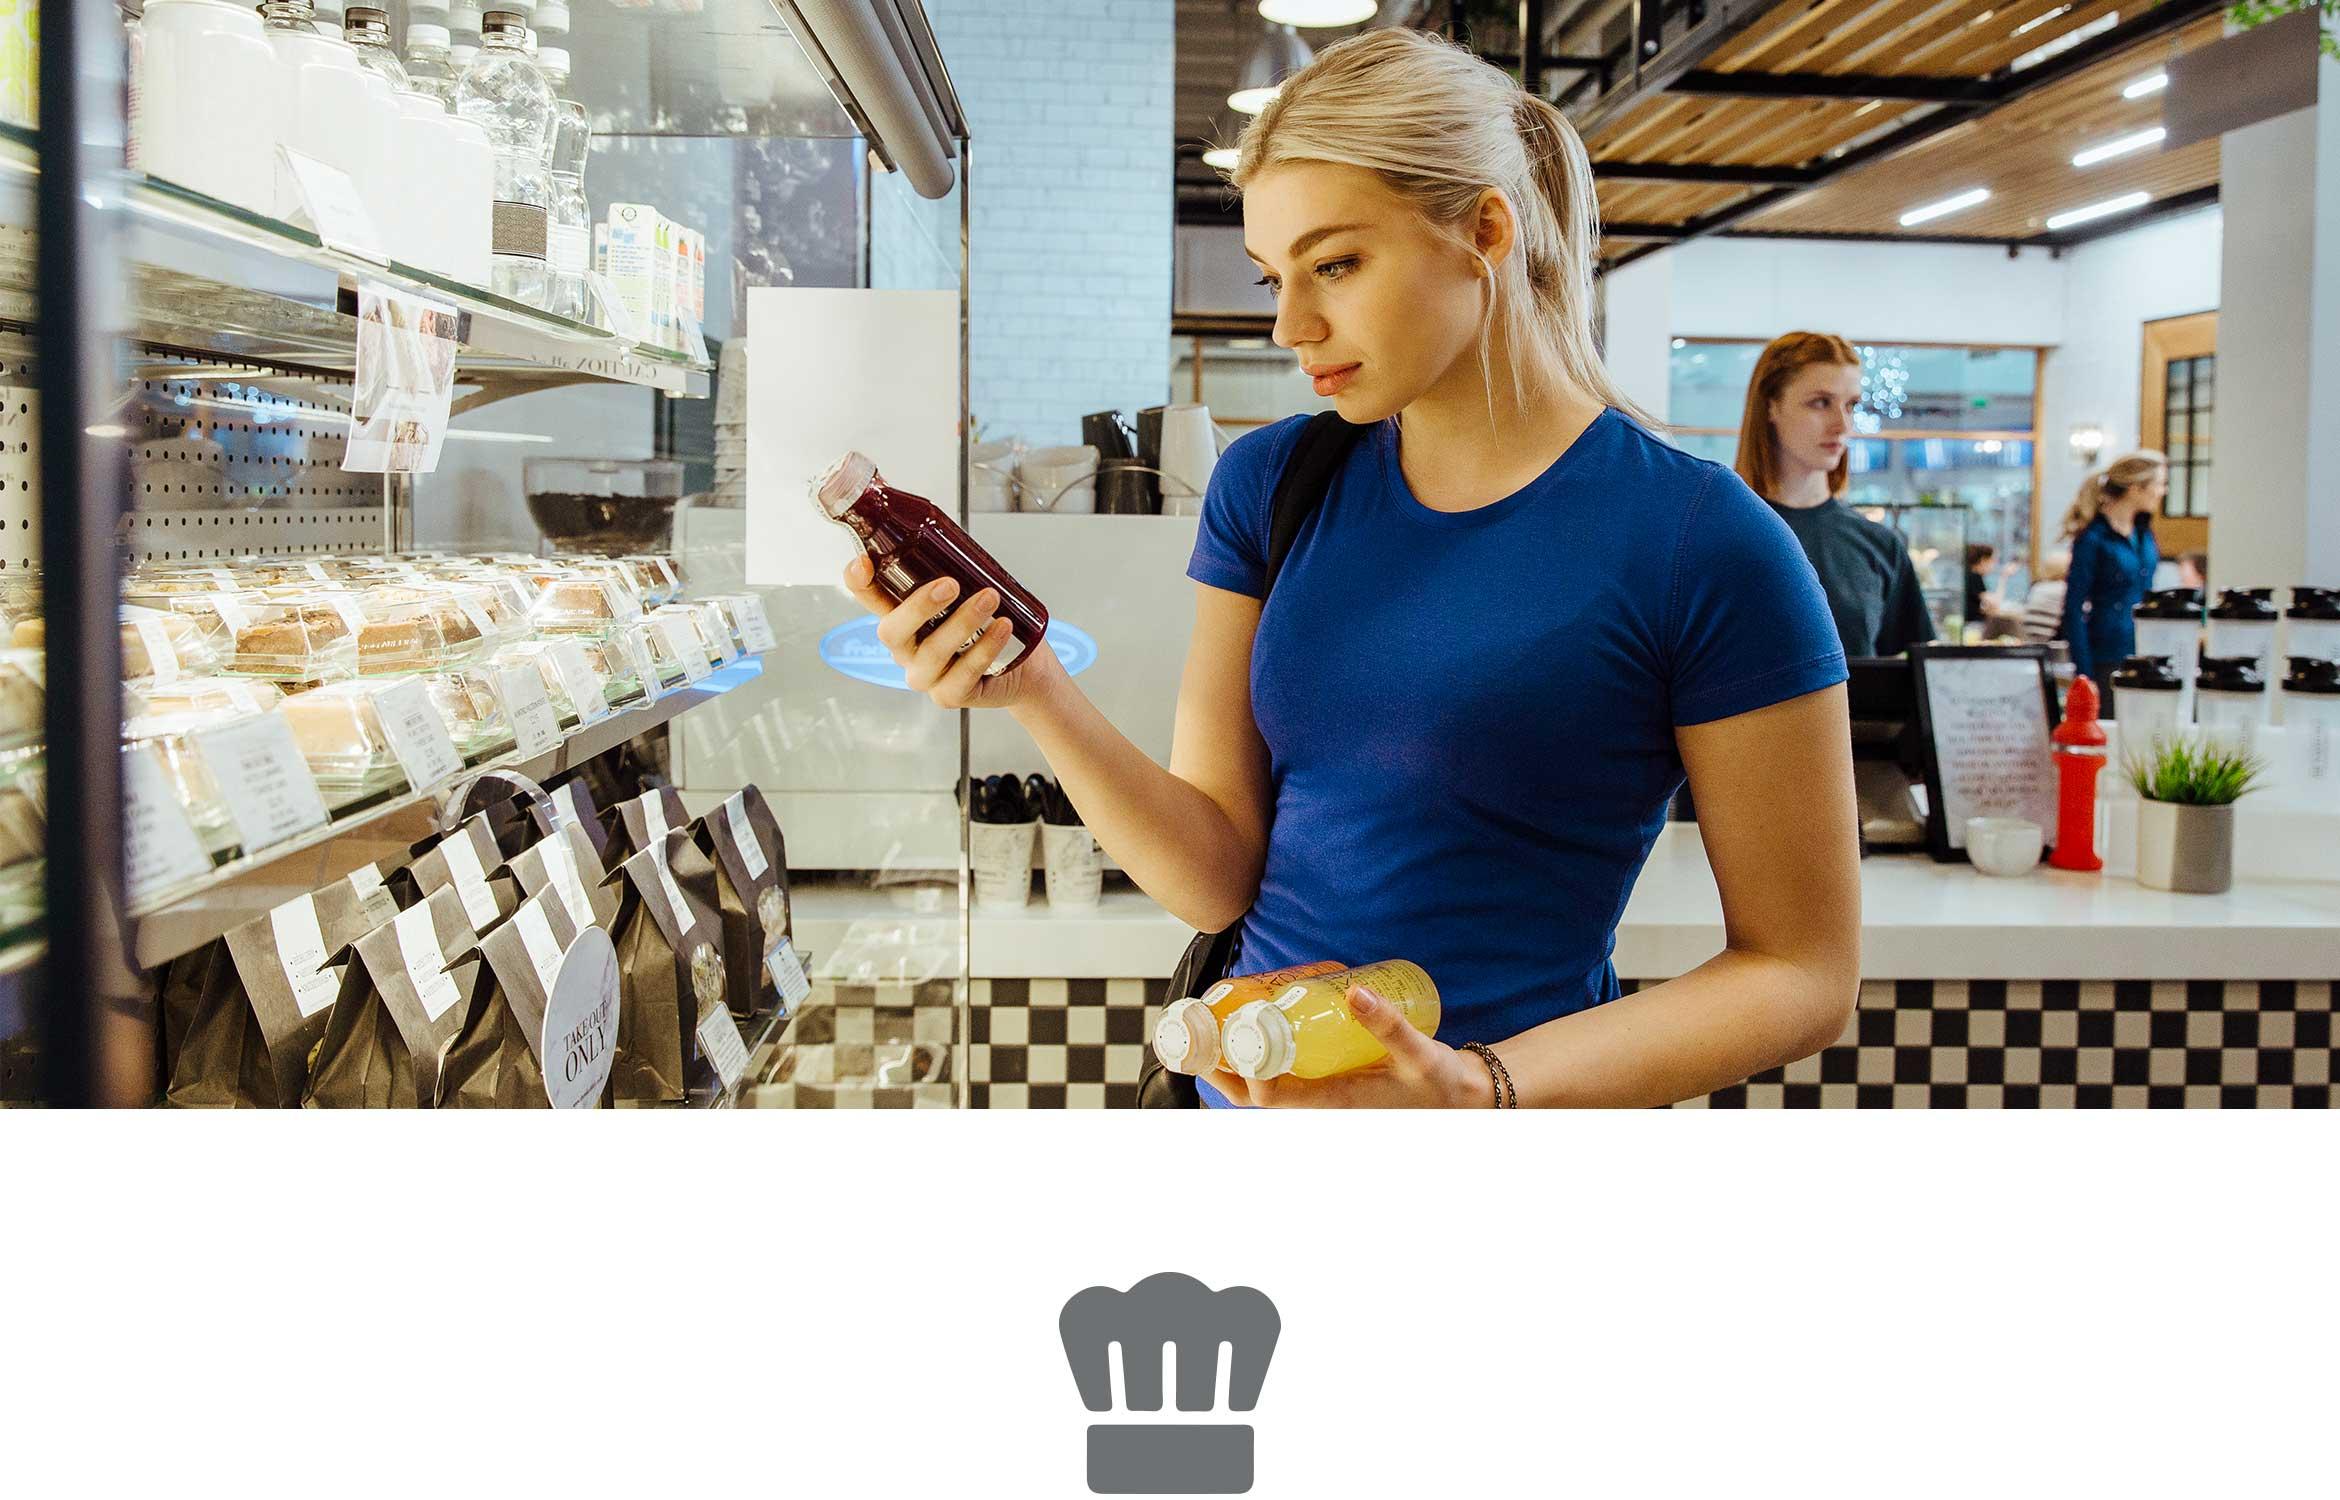 Woman with blond hair wearing blue tshirt looking at a juice bottle holding sandwich